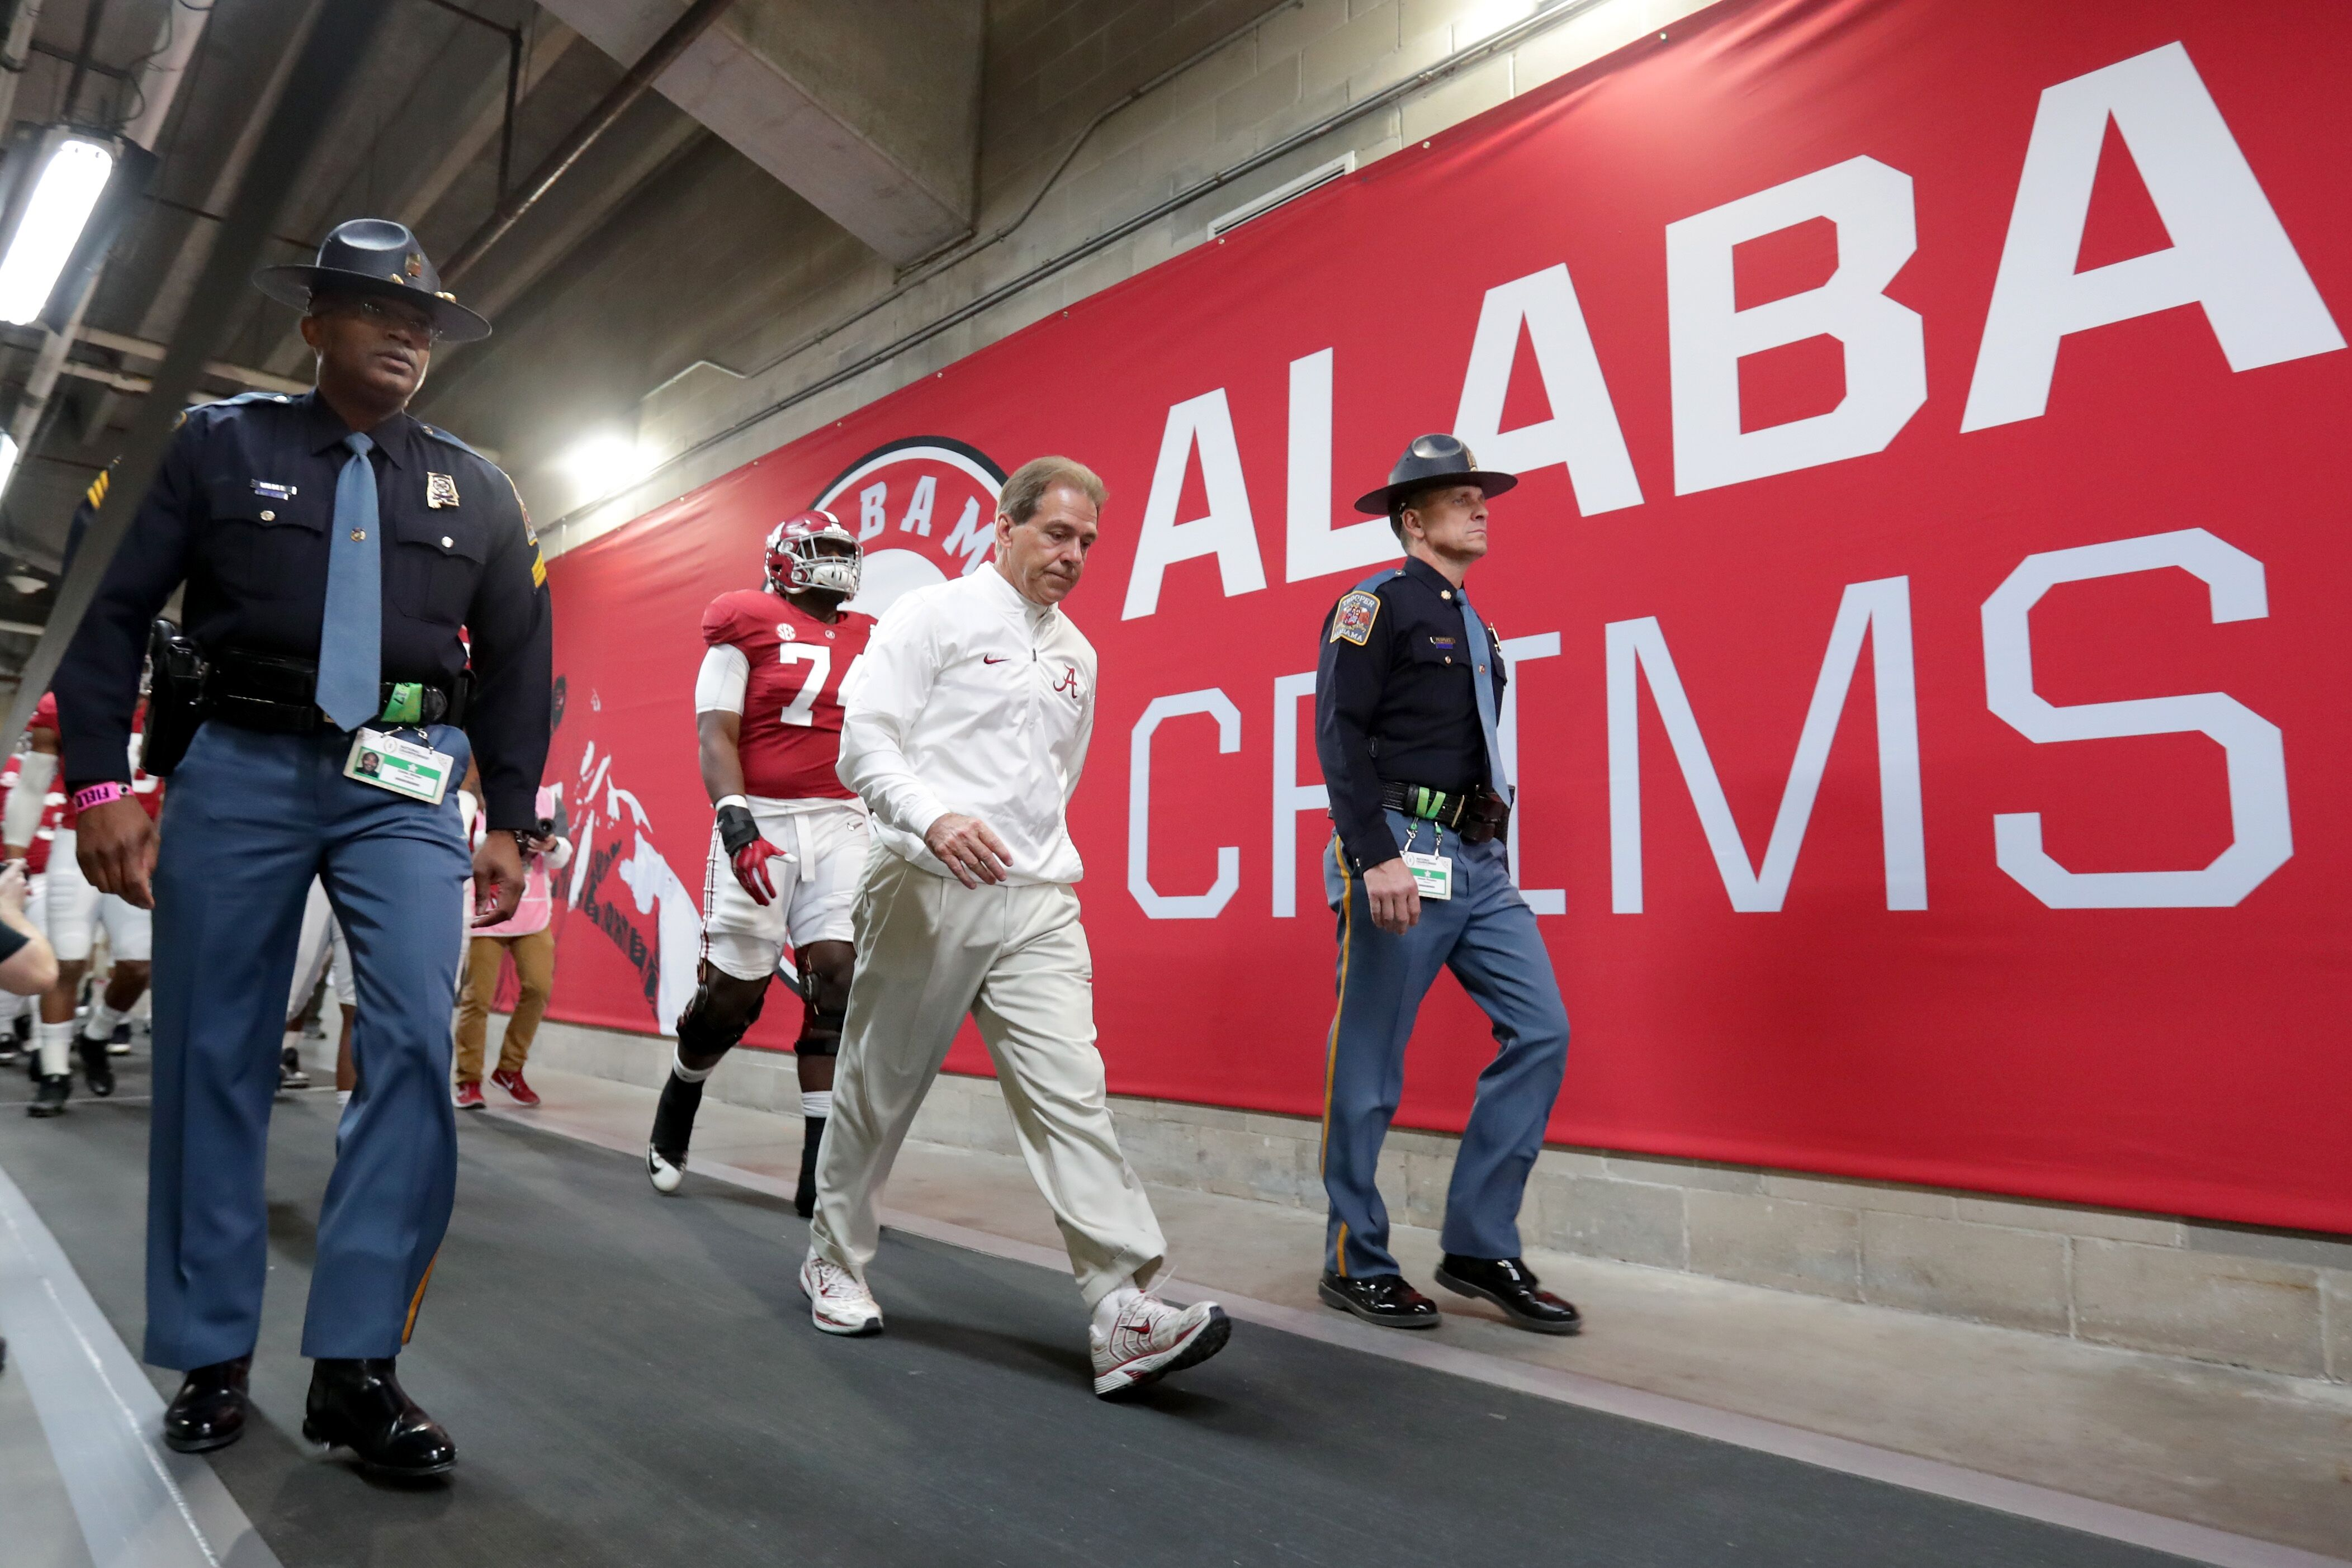 Alabama Football: Top QB picks UGA, not a problem for the Tide